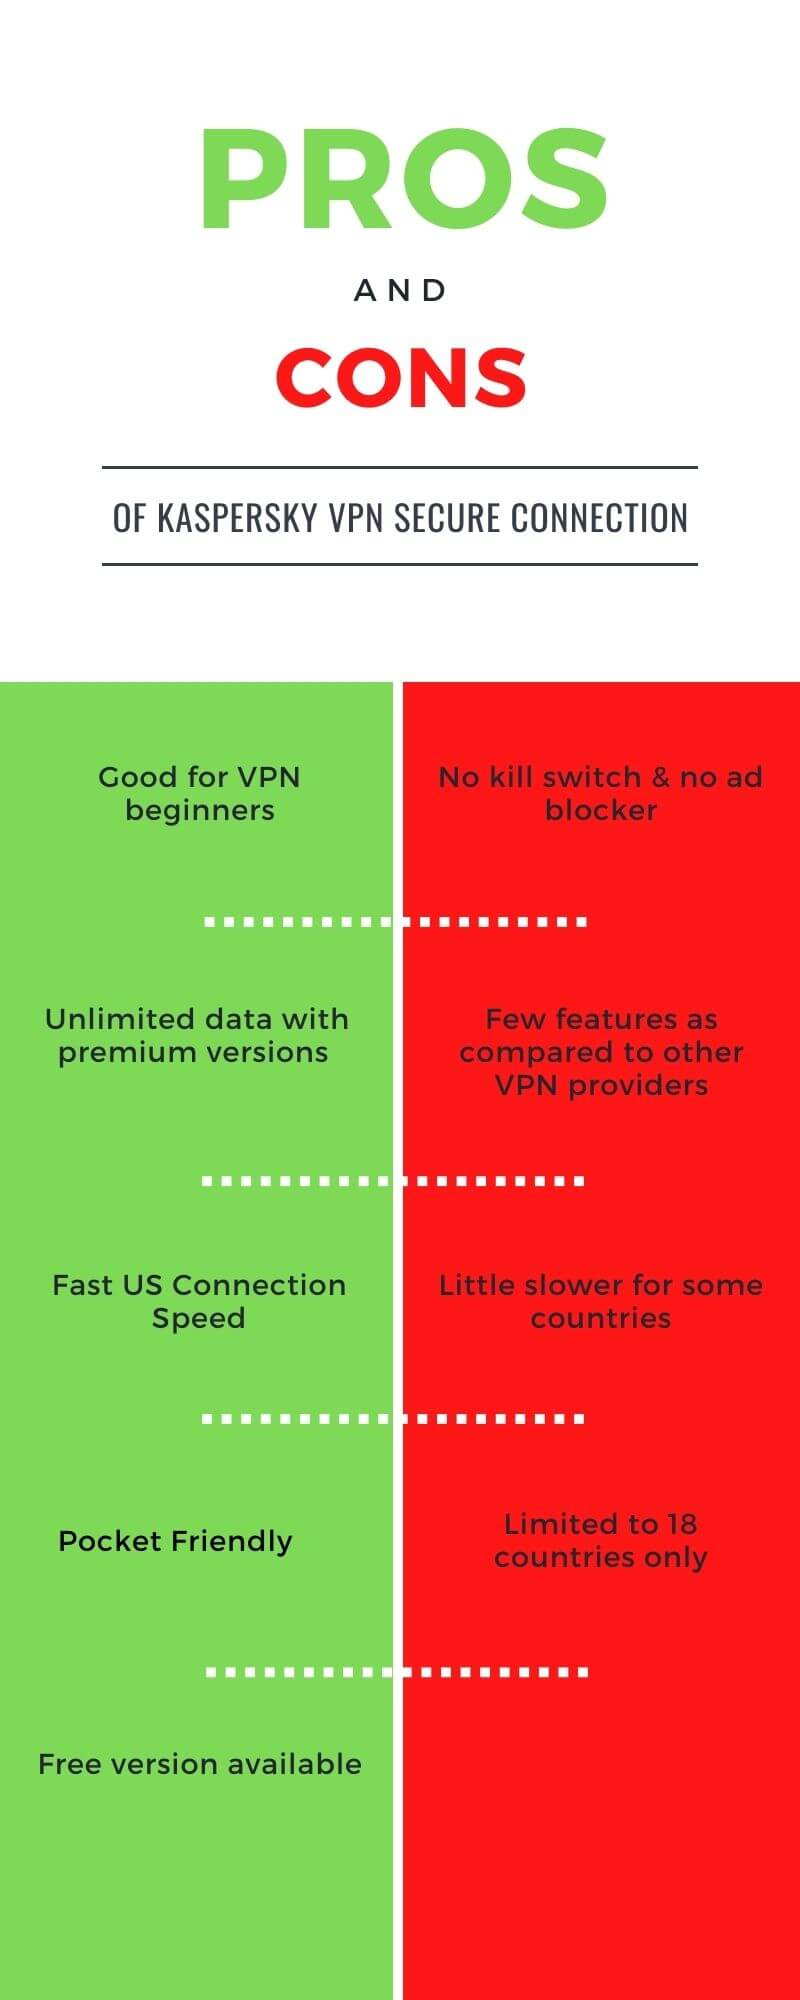 Pros & cons of of Kaspersky Vpn secure connection